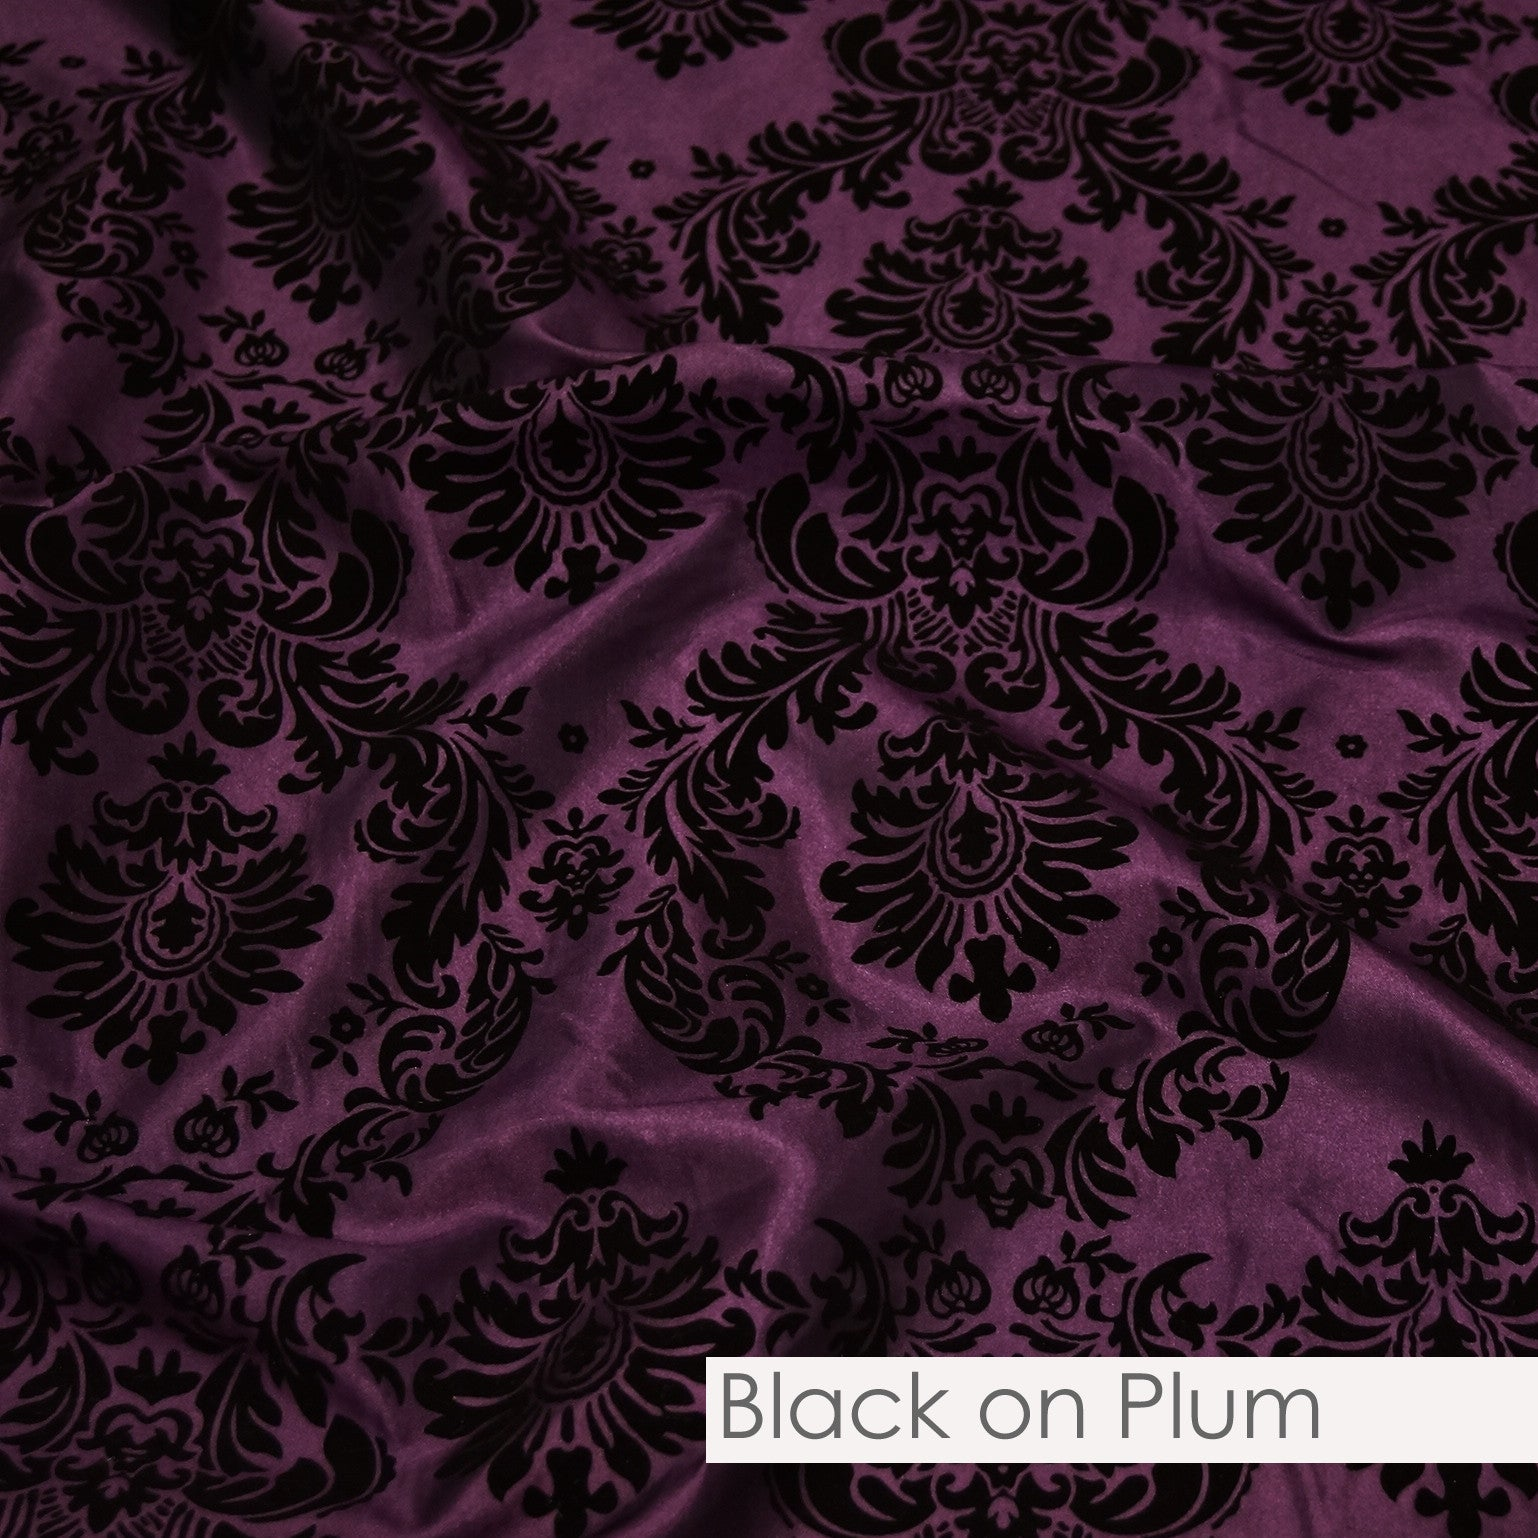 BLACK ON PLUM